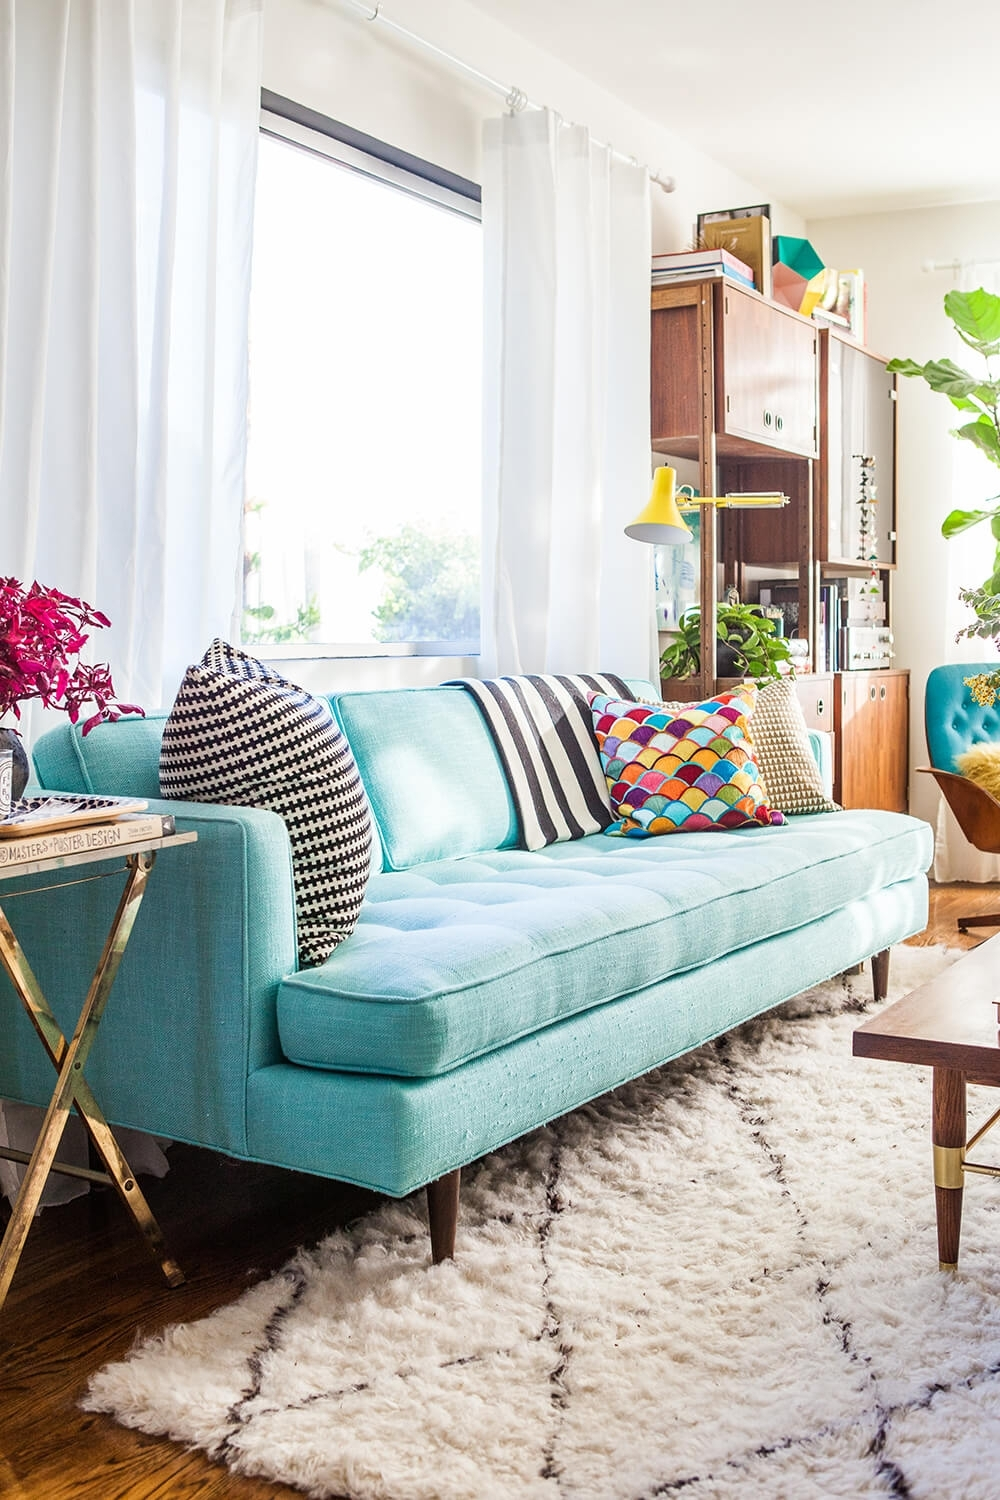 84 Affordable Amazing Sofas Under $1000 - Emily Henderson in Adeline 3 Piece Sectionals